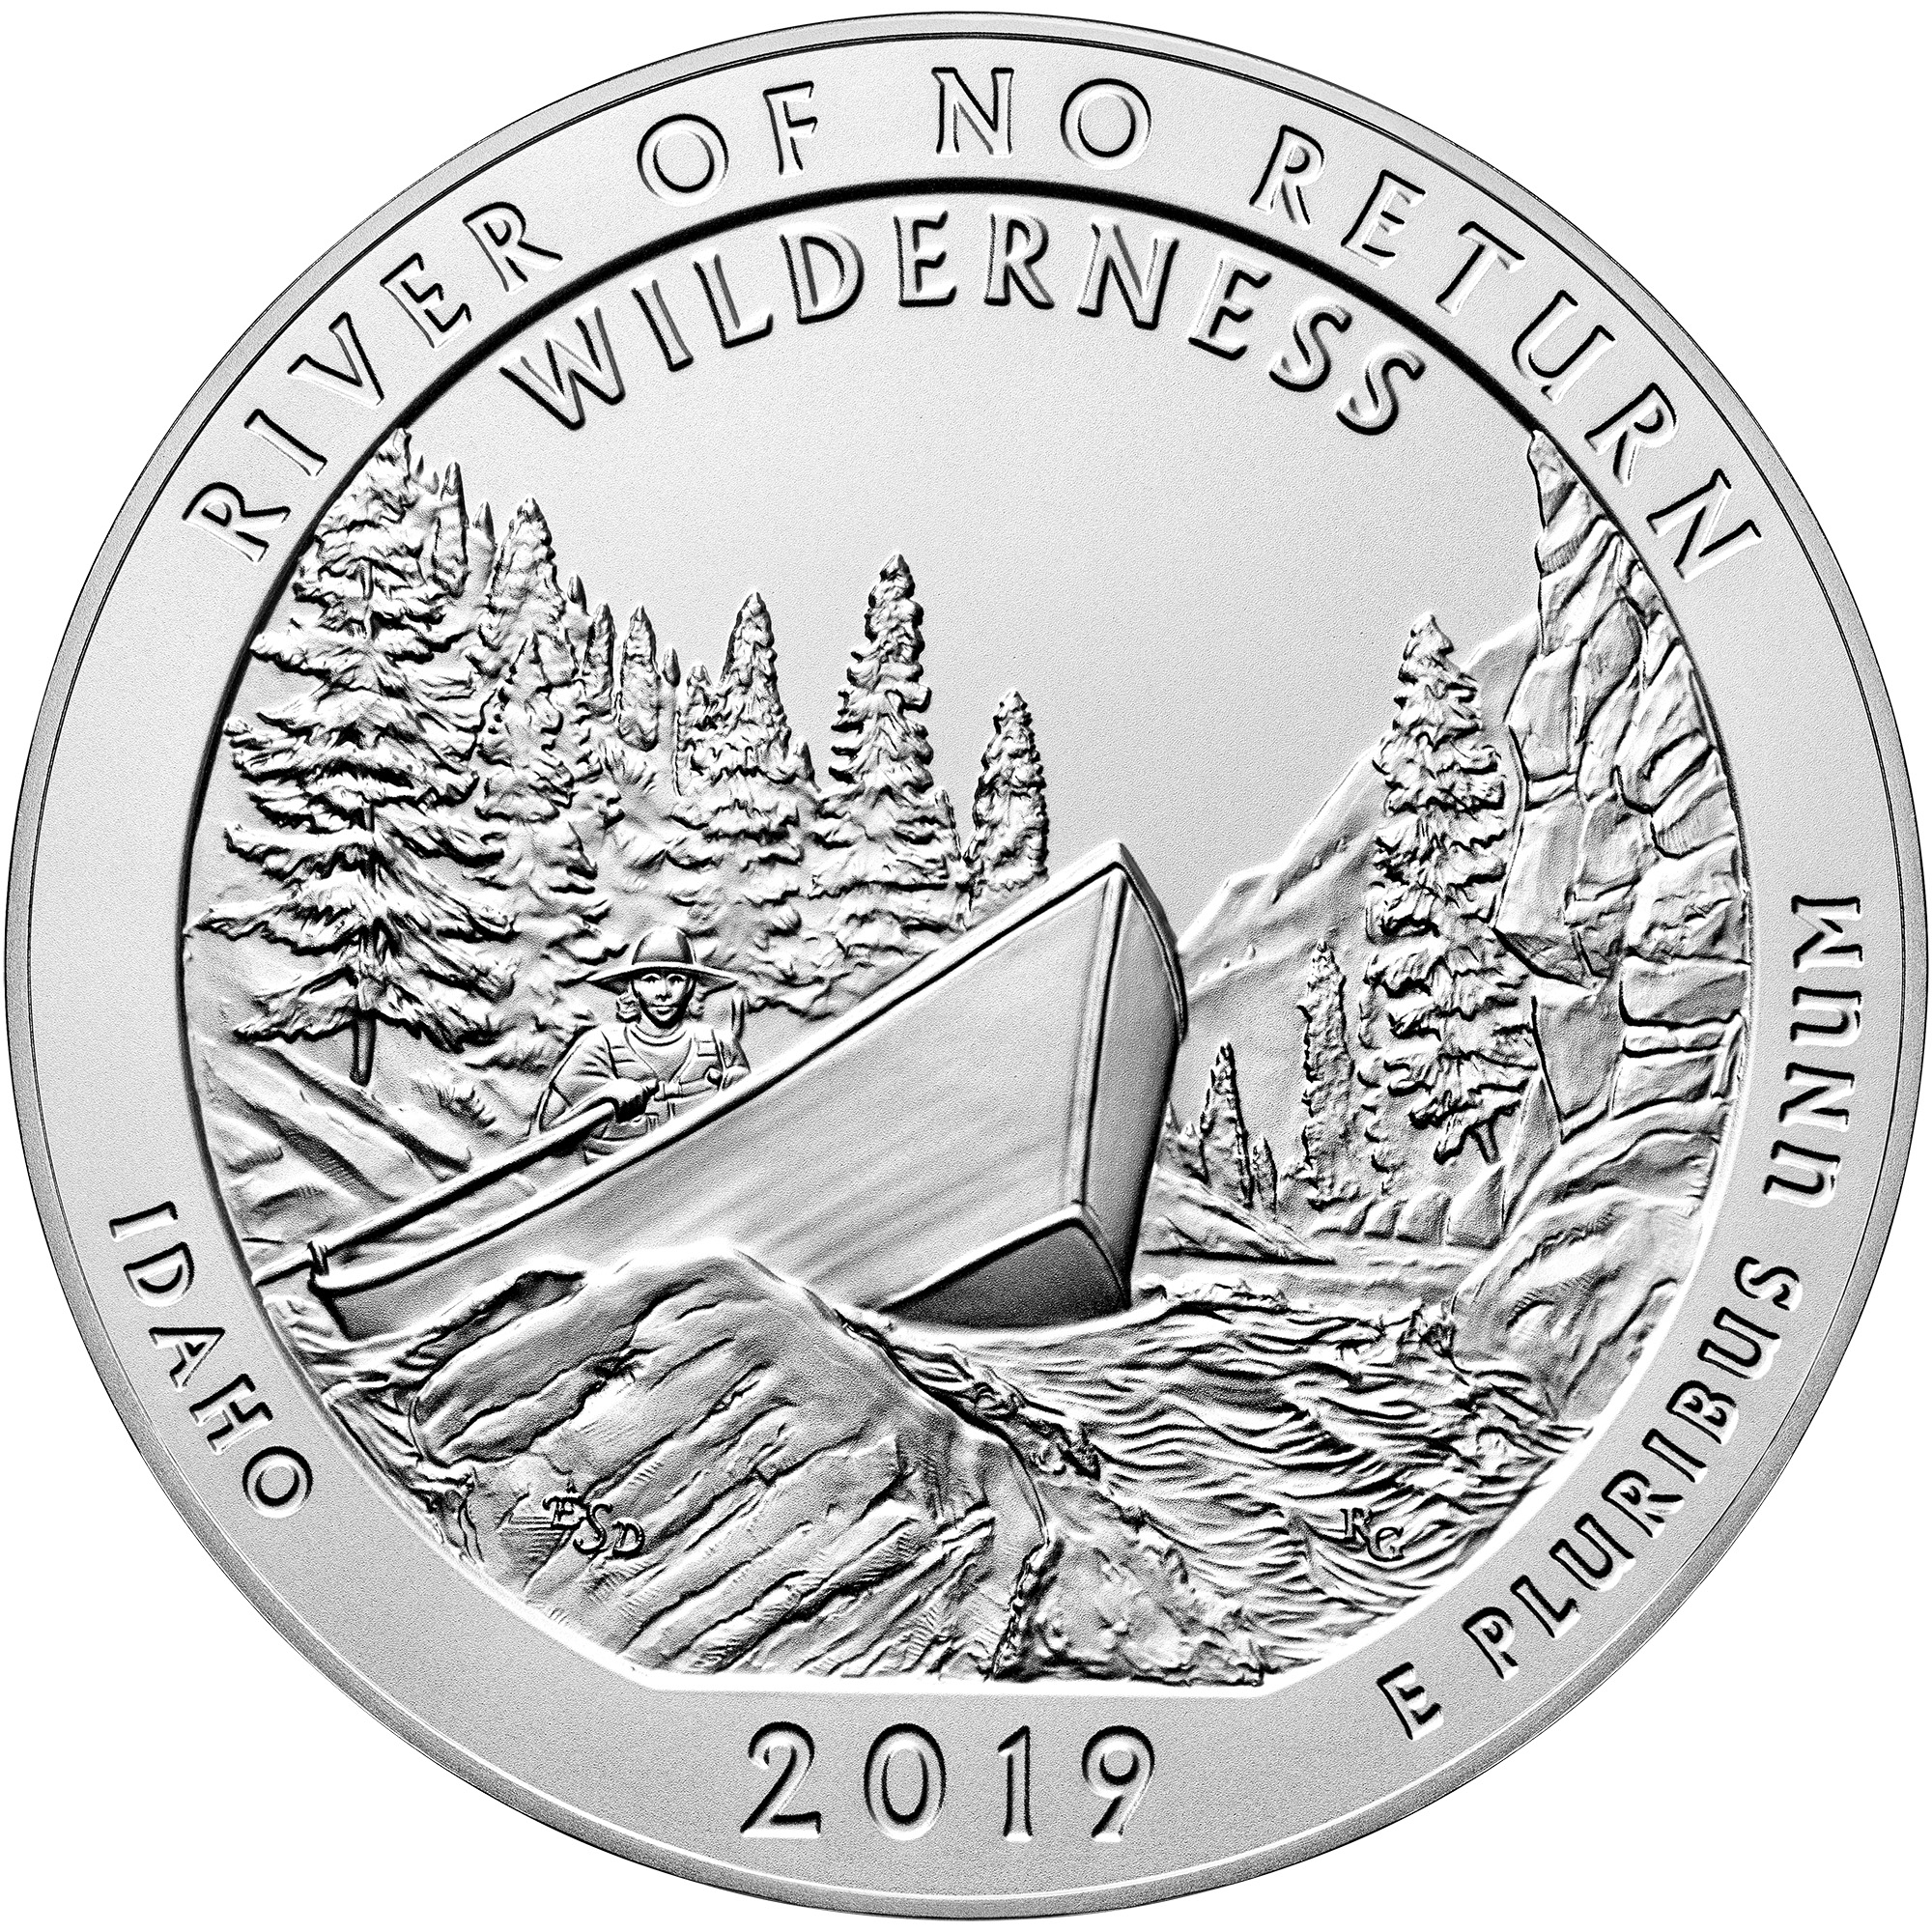 2019 America the Beautiful Quarters Five Ounce Silver Uncirculated Coin River of No Return Wilderness Idaho Reverse